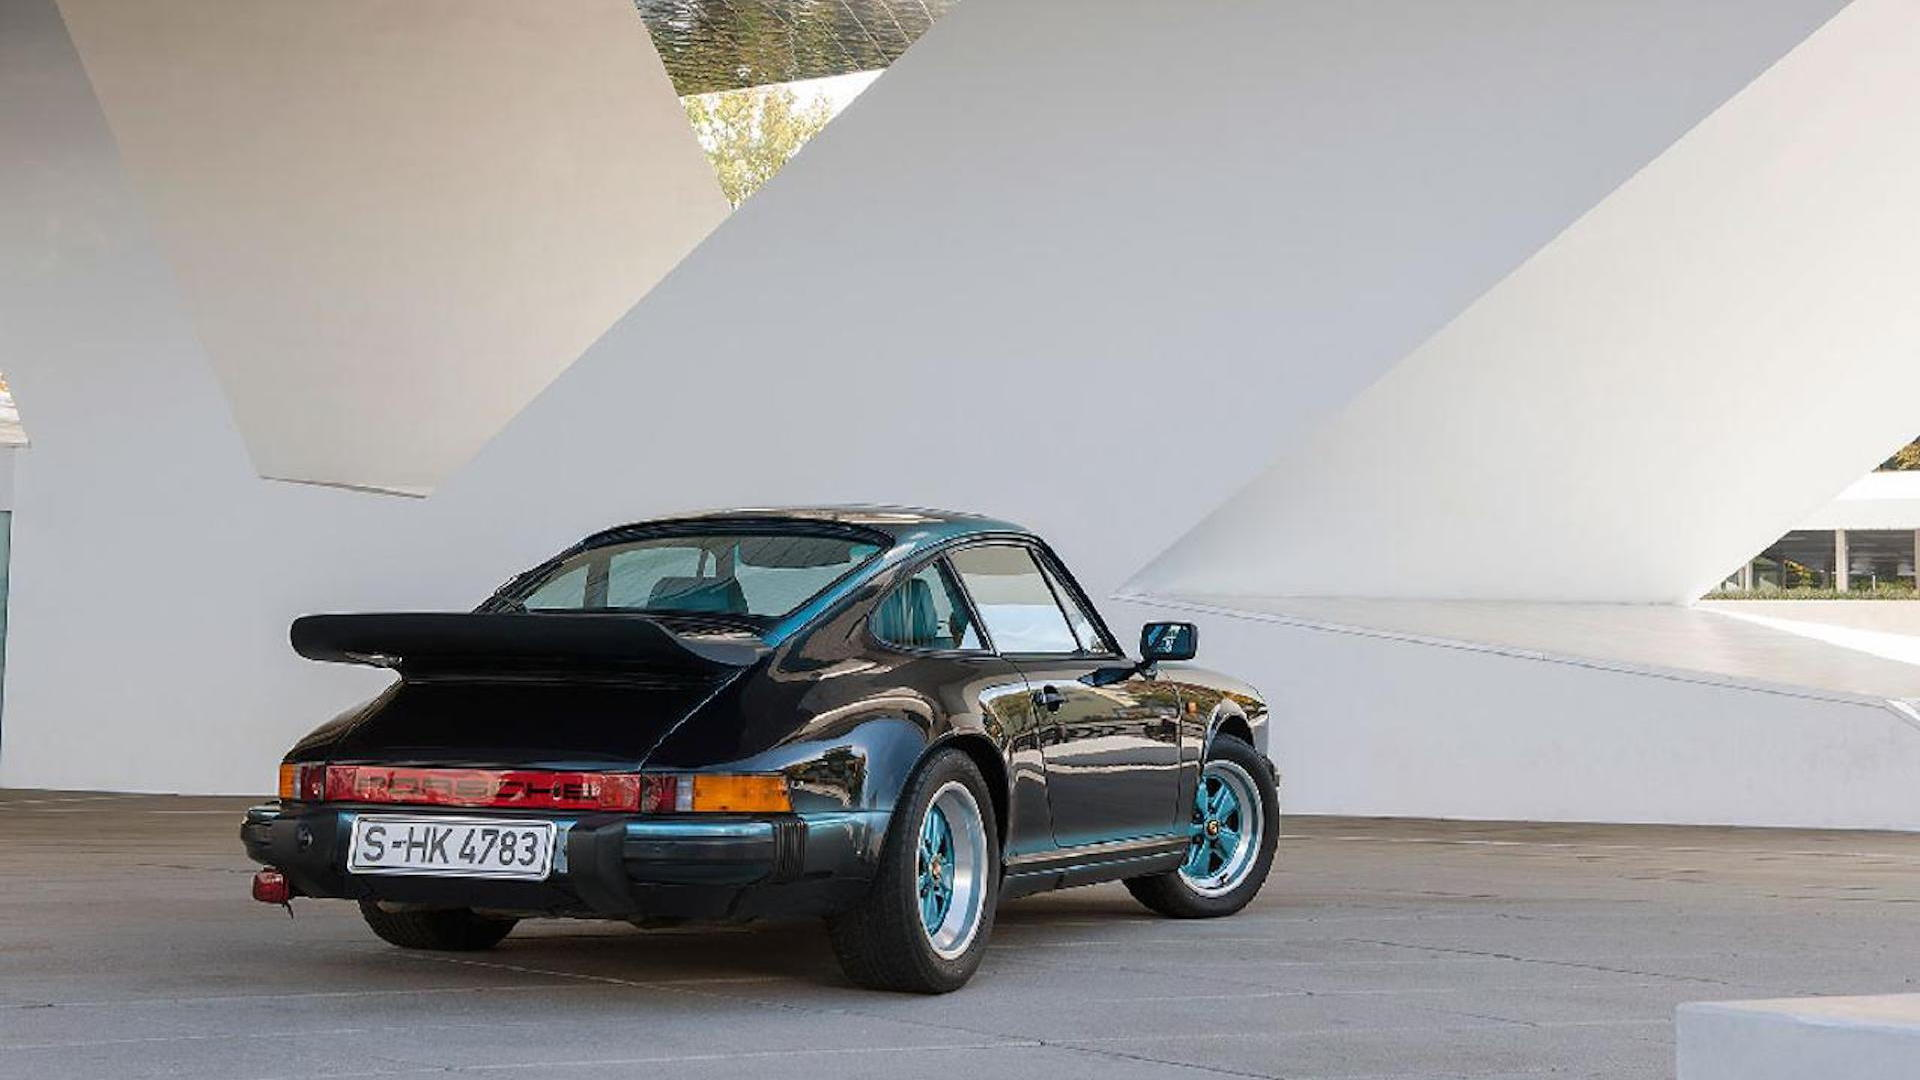 1984 Porsche 911 Carrera restored by Porsche Classic